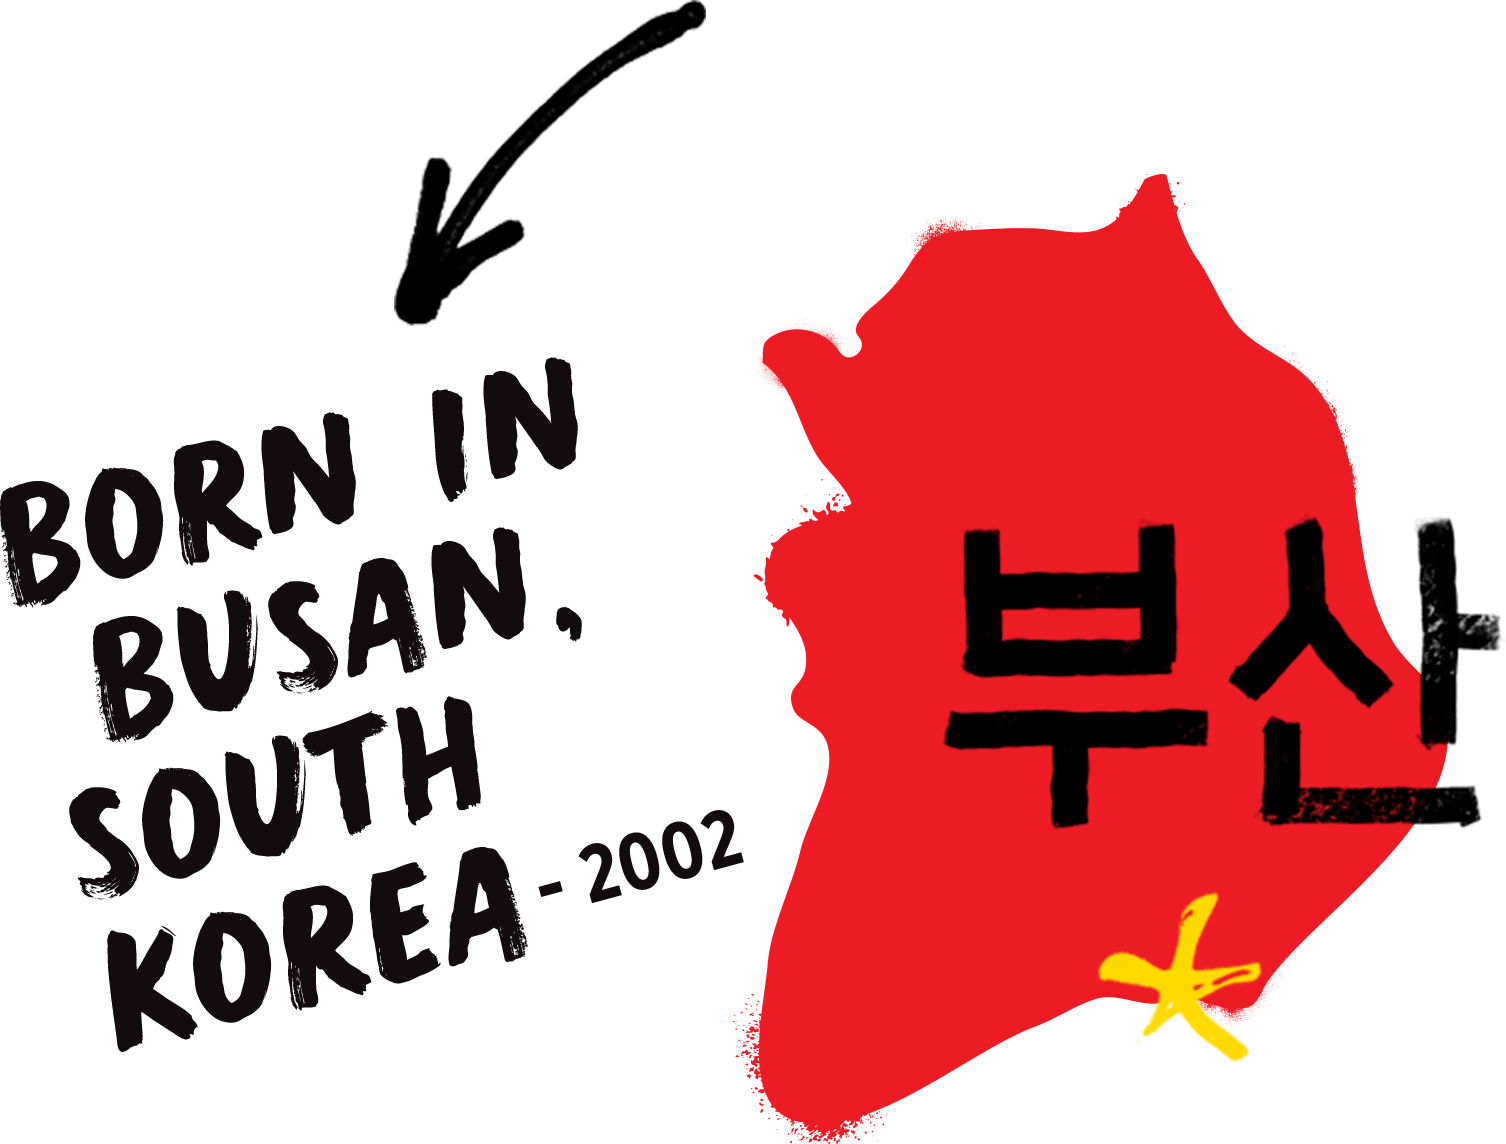 Born in Busan South Korea 2002